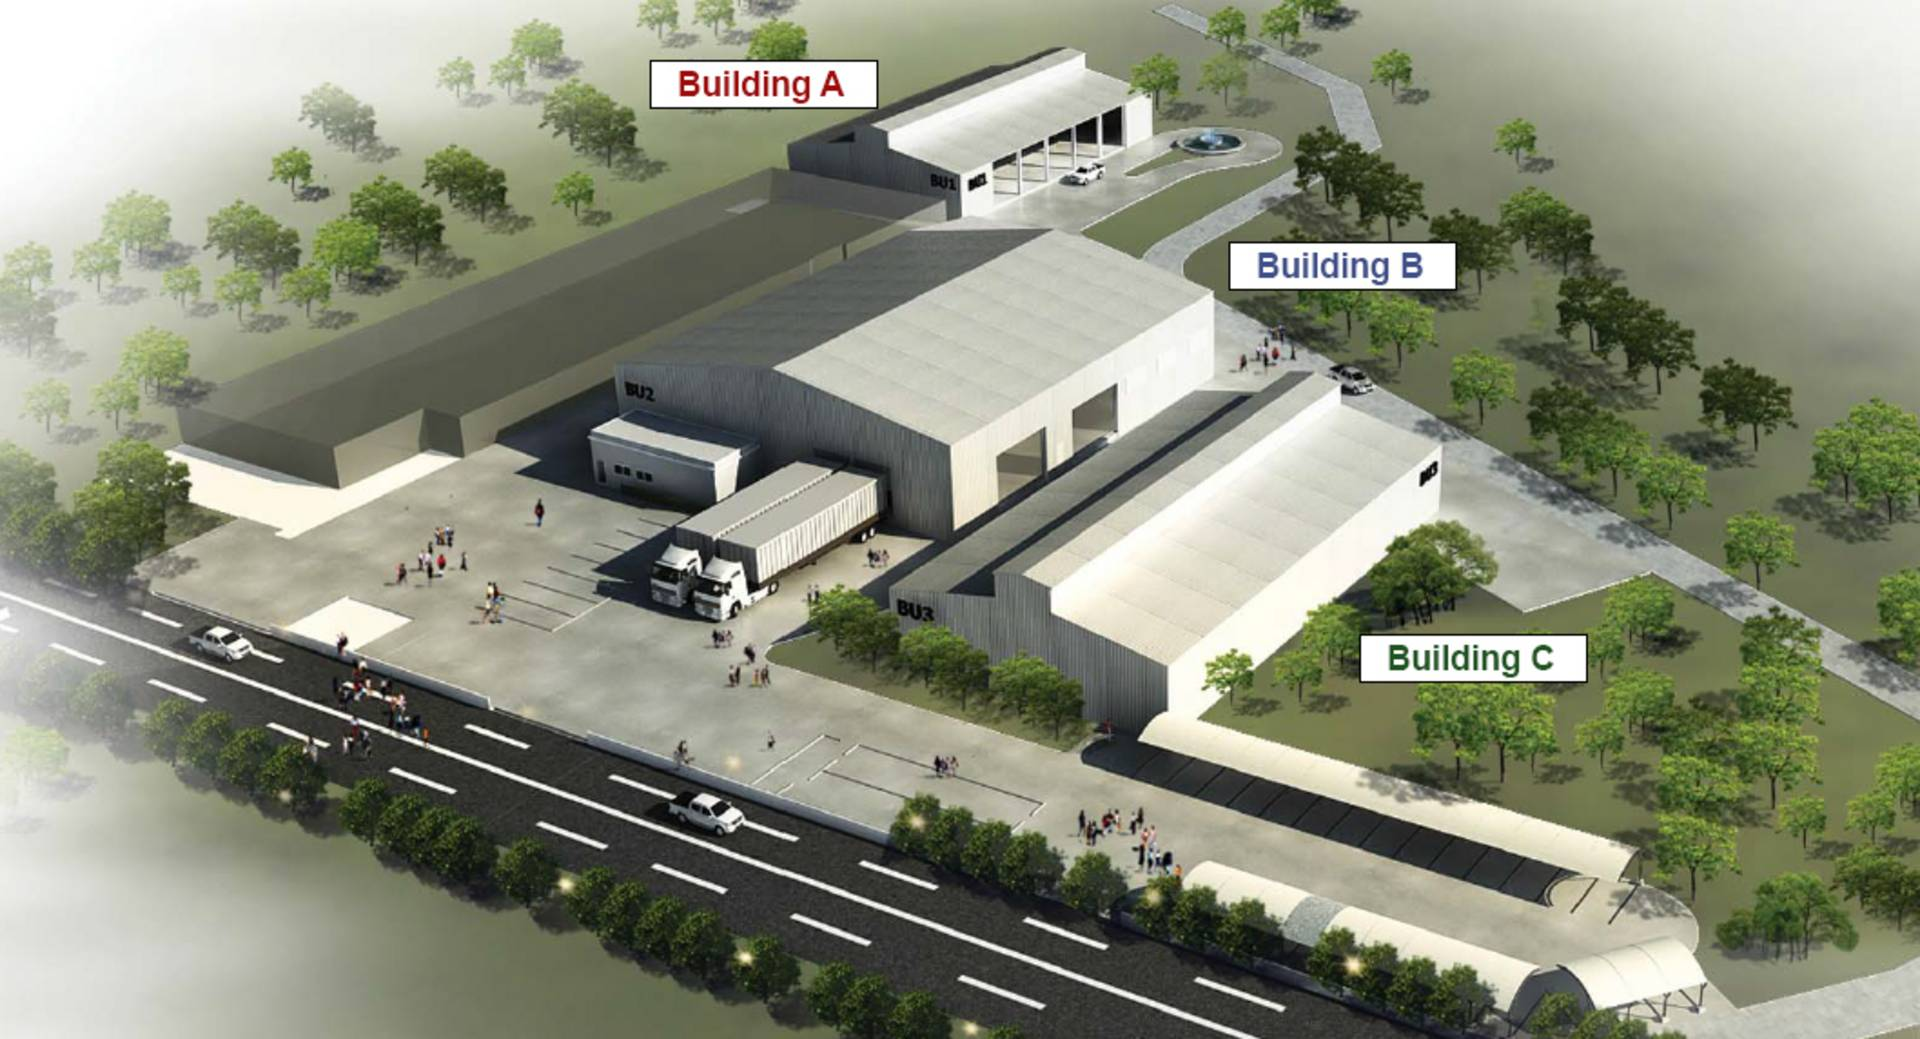 Building A: Welding Shop (expansion from the existing factory & office); Building B: Warehouse and QA Department; Building C: Finishing & Coating and future utility